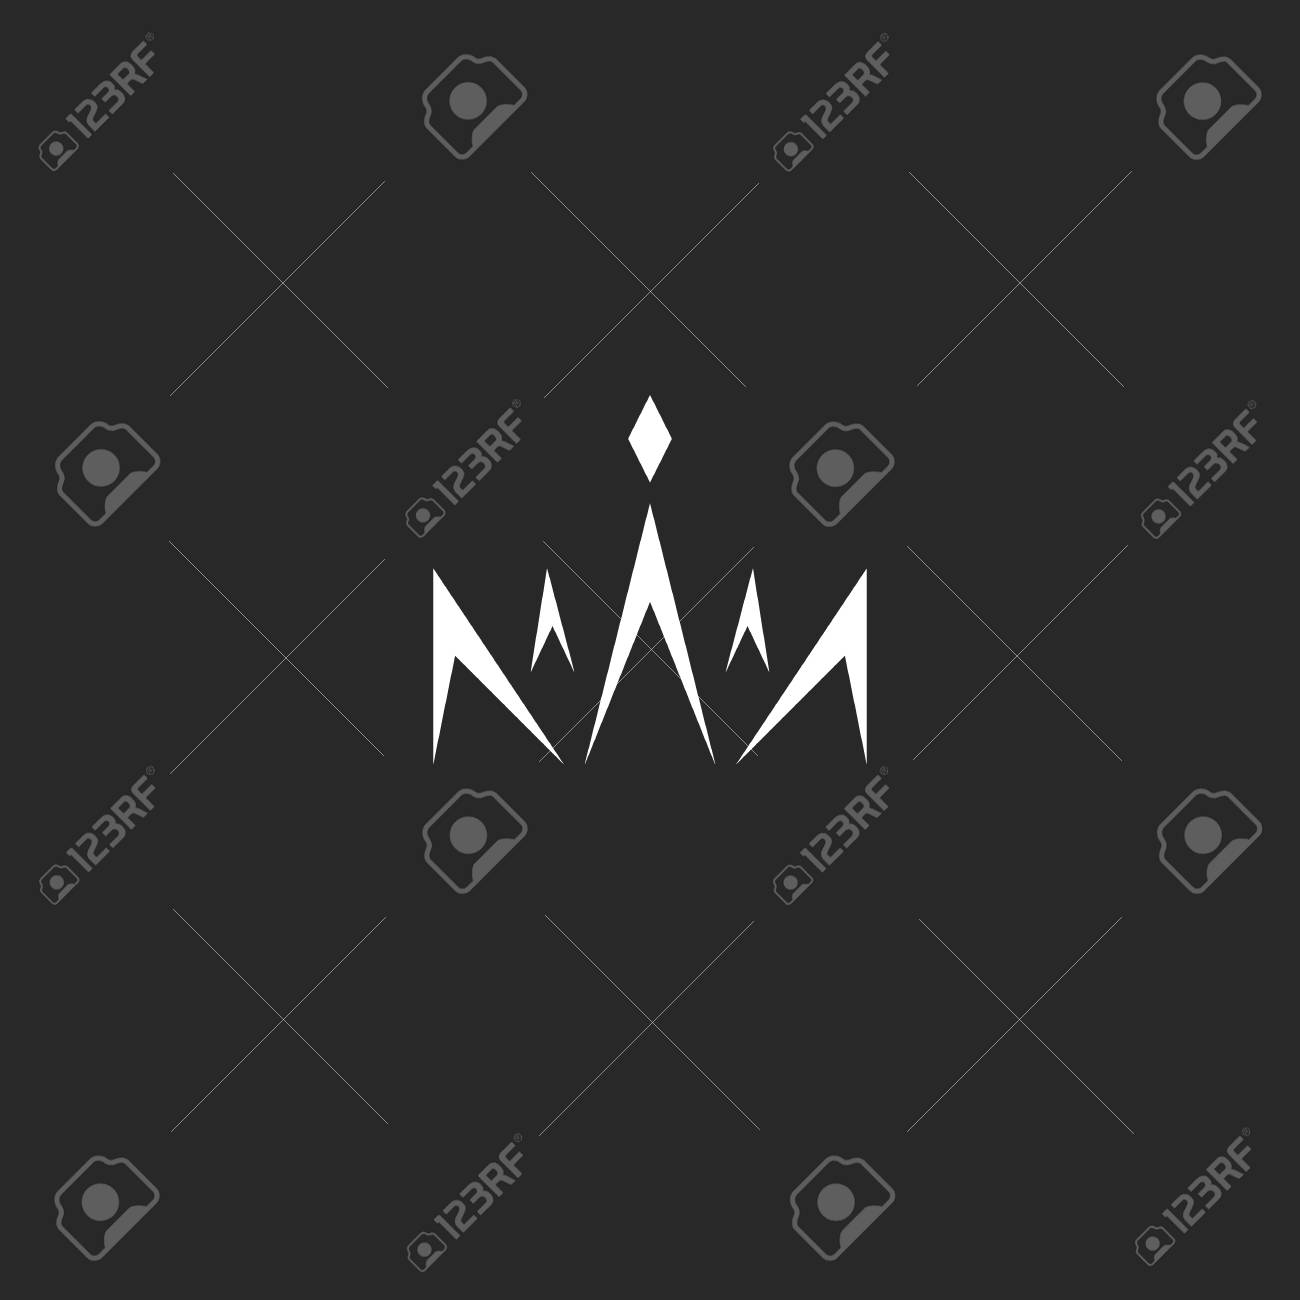 Abstract Crown In The Style Monogram Black And White Lines With Royalty Free Cliparts Vectors And Stock Illustration Image 118532995